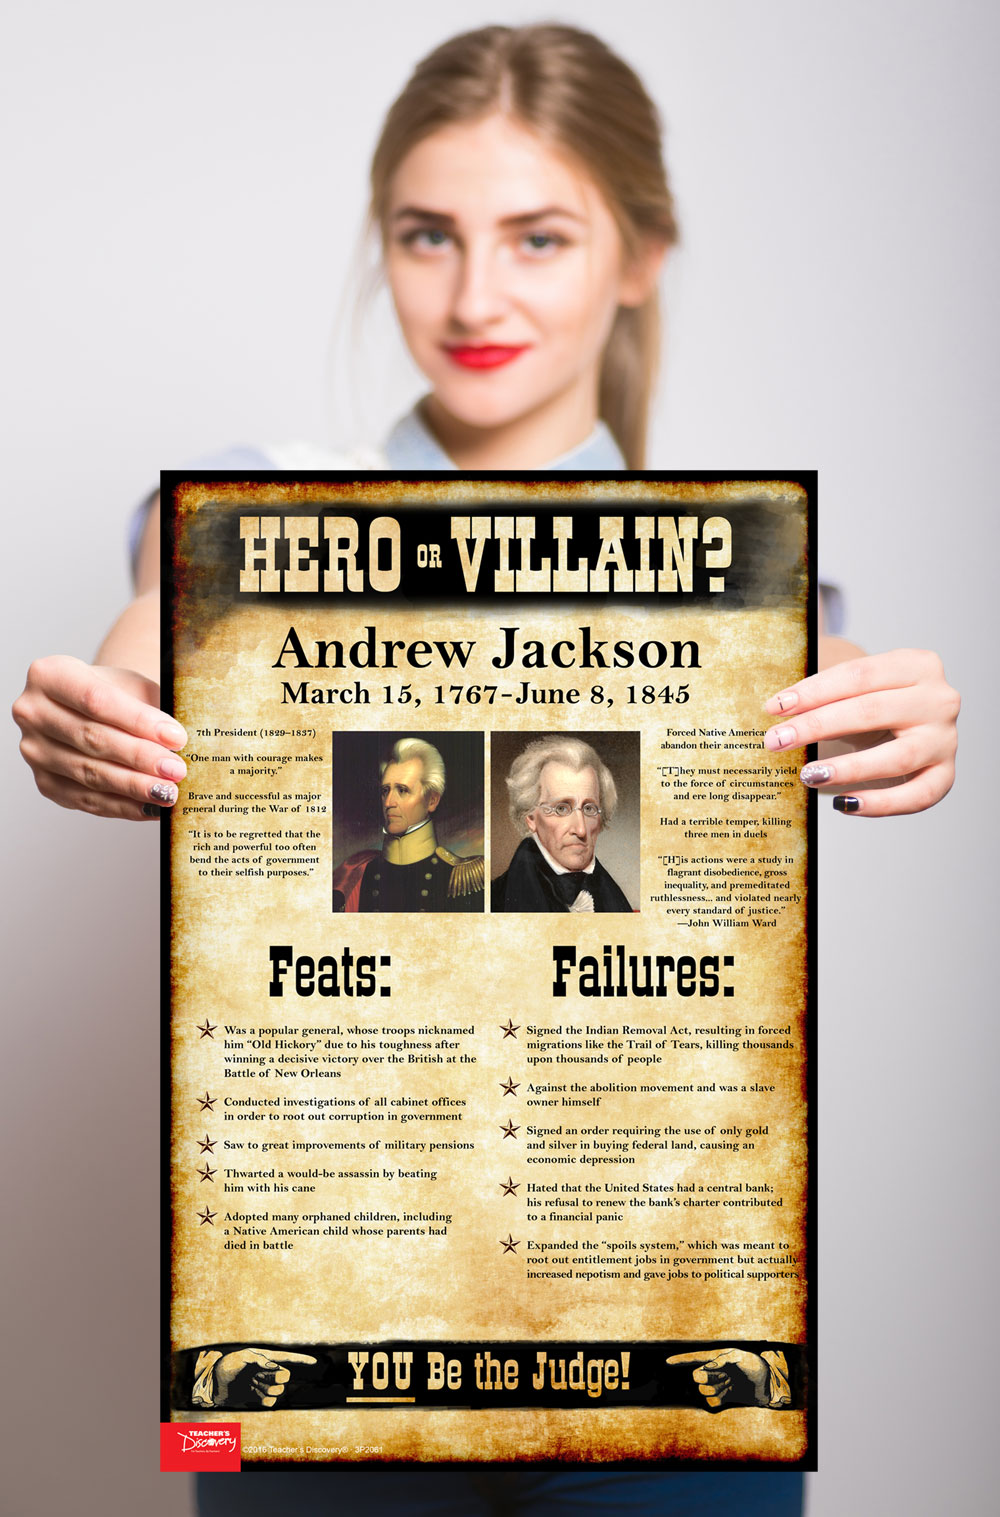 andrew jackson hero or villain essay Andrew jackson a hero or a villain during jackson's presidency many would say that he was a hero while others would speak of him as a villain it all depends on.